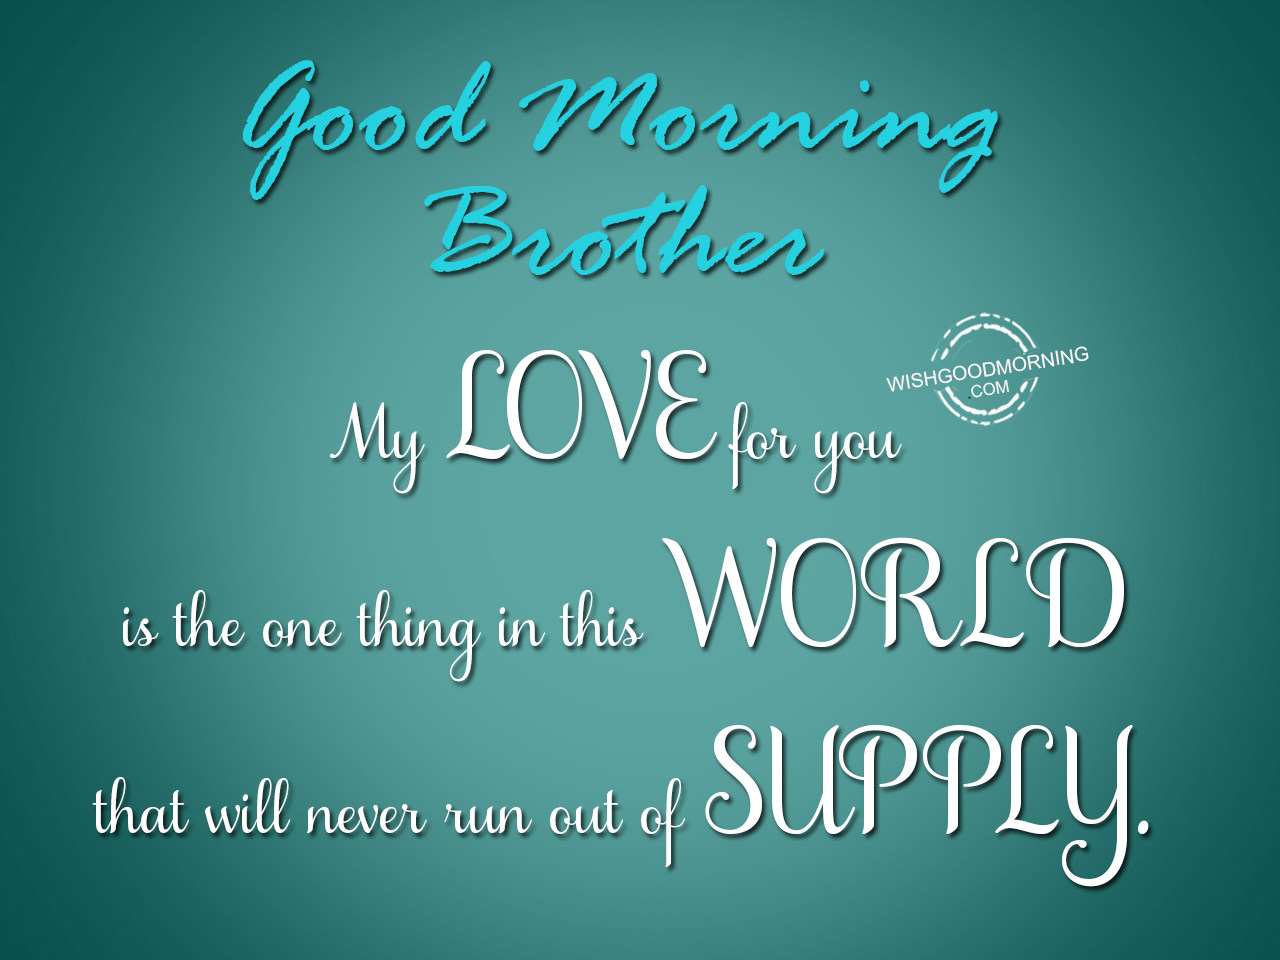 Good Morning Brother : Good morning wishes for brother pictures images page